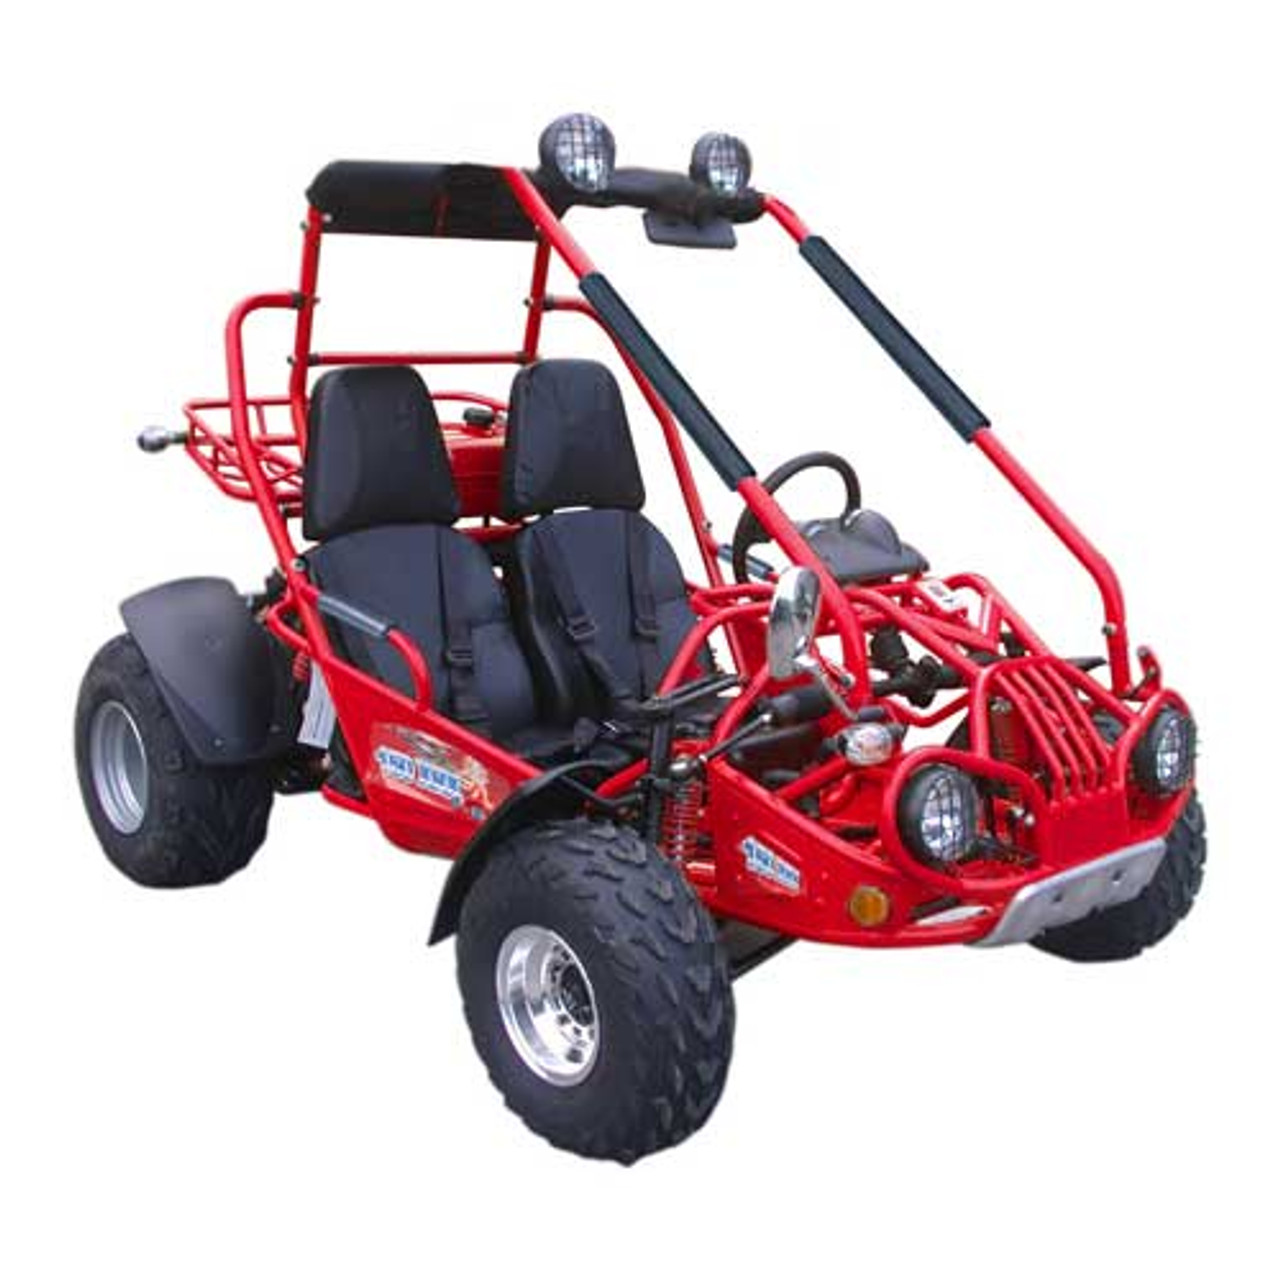 TrailMaster 150 XRX Go-Kart - Red